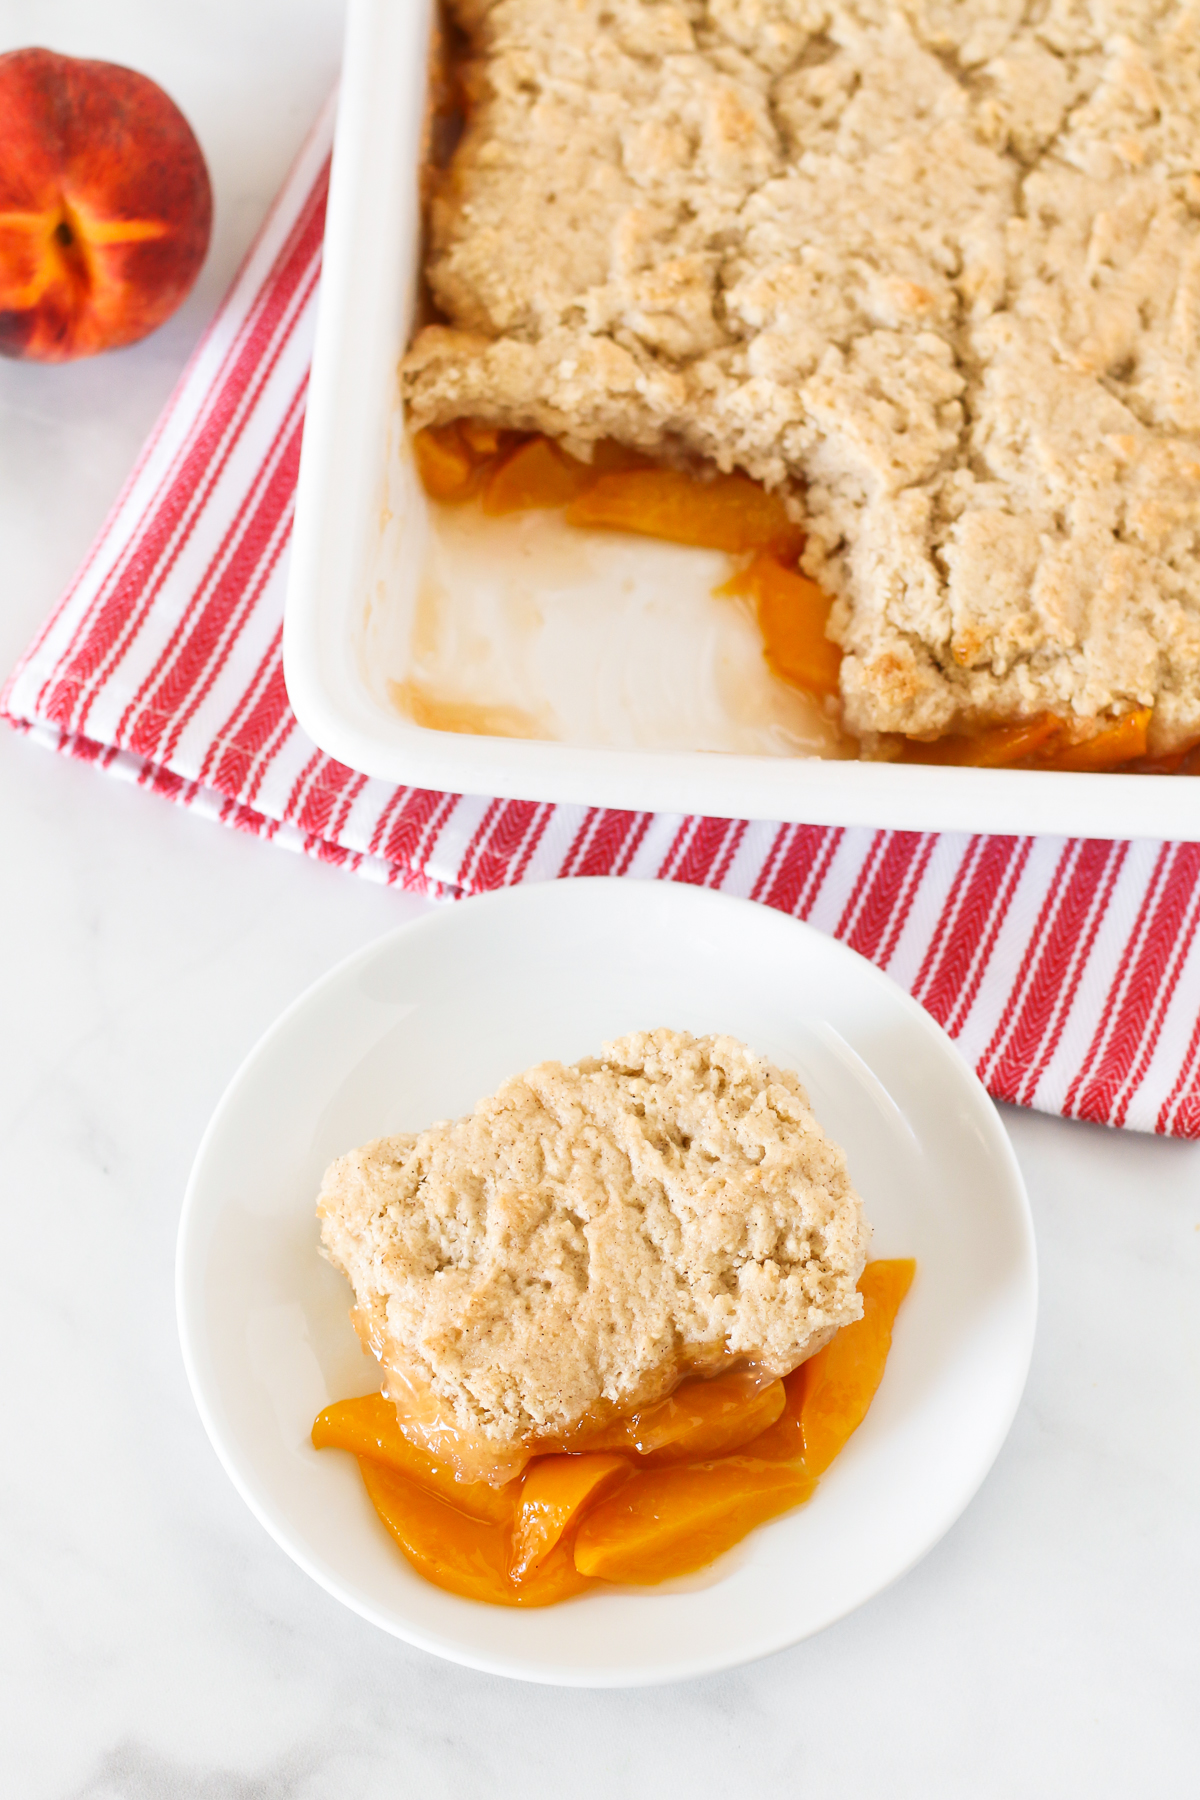 Gluten Free Vegan Peach Cobbler. Perfectly golden biscuit-like topping over sweet, juicy fresh peaches. A summertime must!